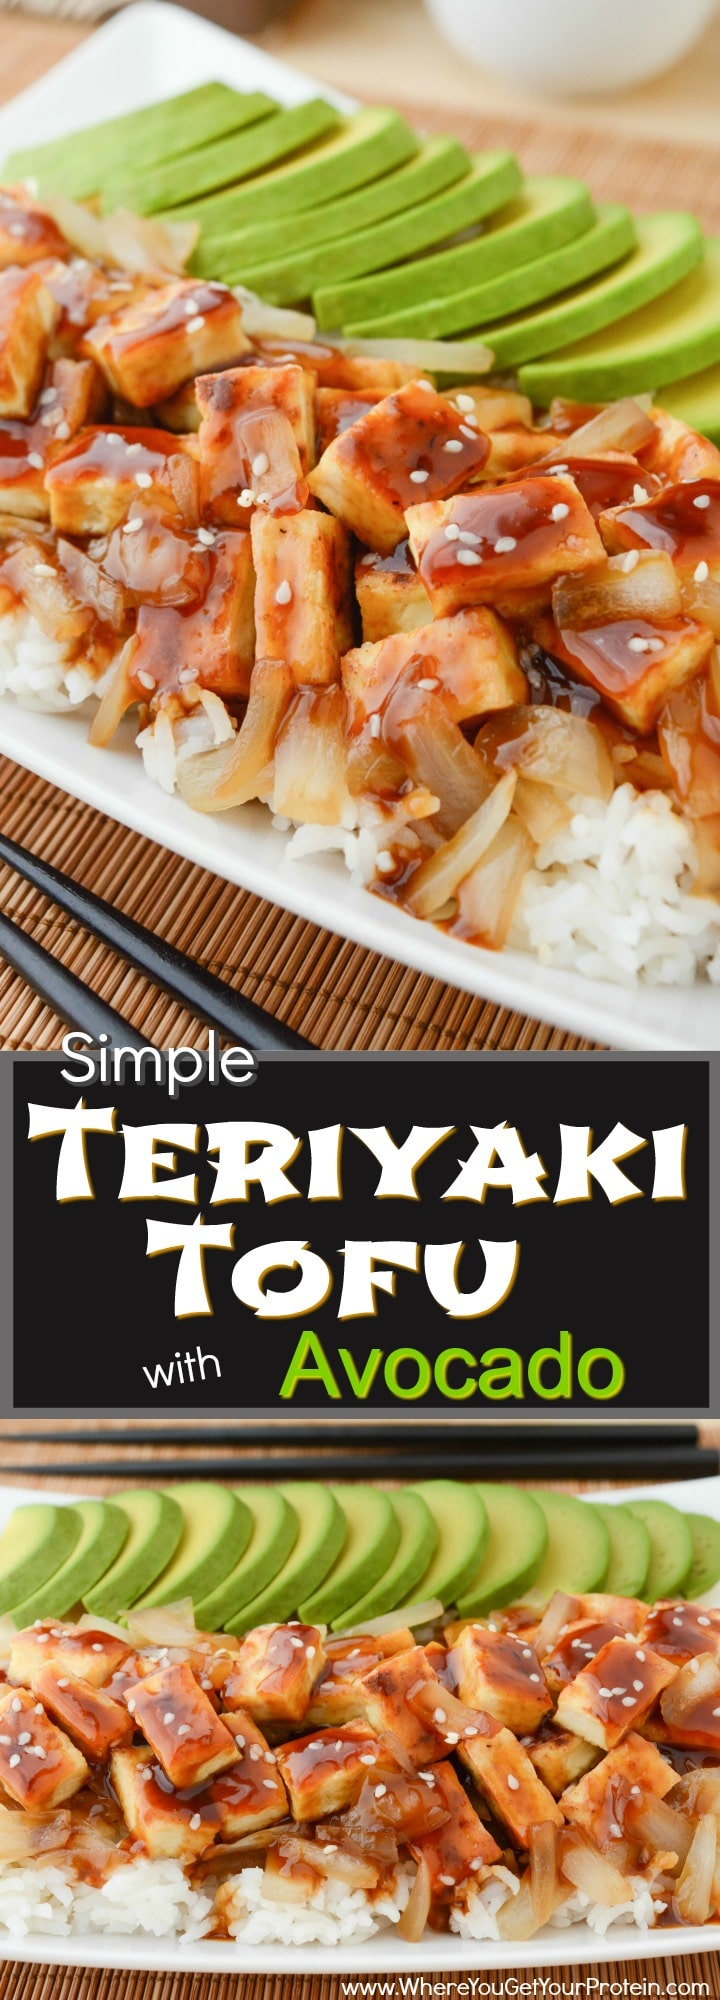 Teriyaki Tofu with Avocado is a quick and easy lunch or dinner! The caramelized onions and oven baked tofu are piled on top a soft bed of organic white basmati rice. It's then drizzled with a sweet & salty teriyaki sauce, and topped with sliced buttery ripe avocado! Vegan & Gluten-free